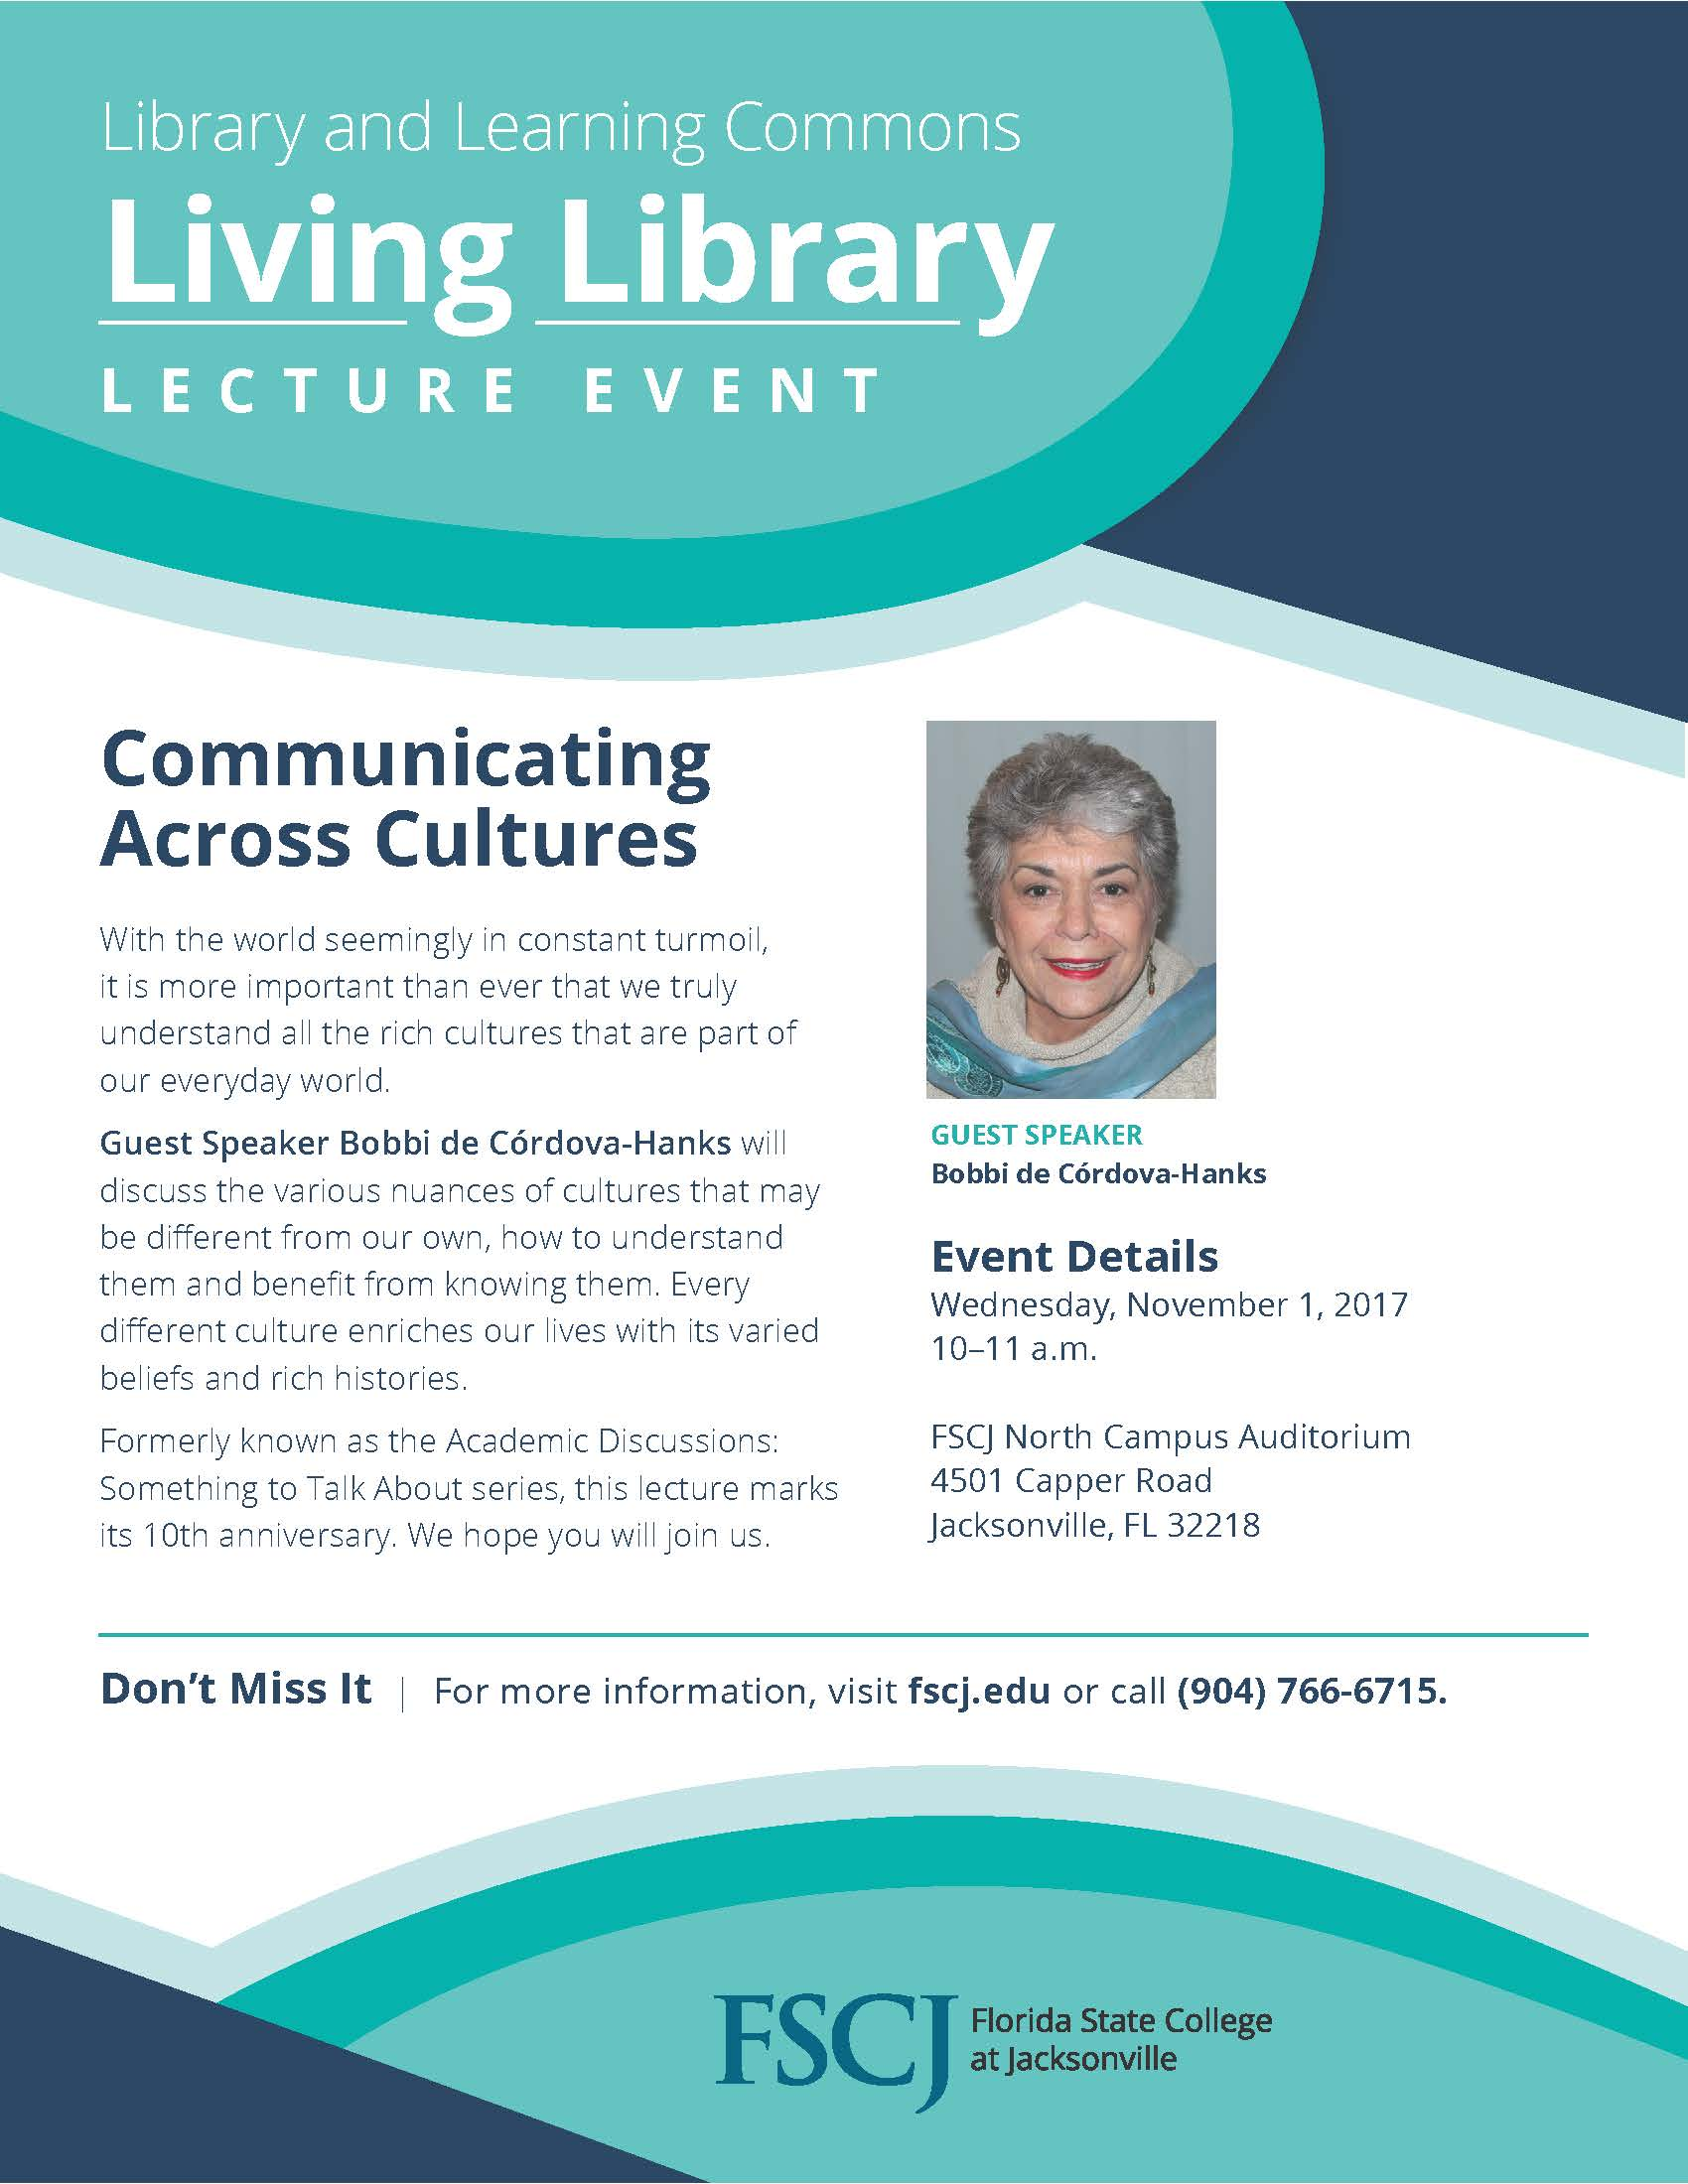 Living Library Lecture Event:  Communicating Across Cultures